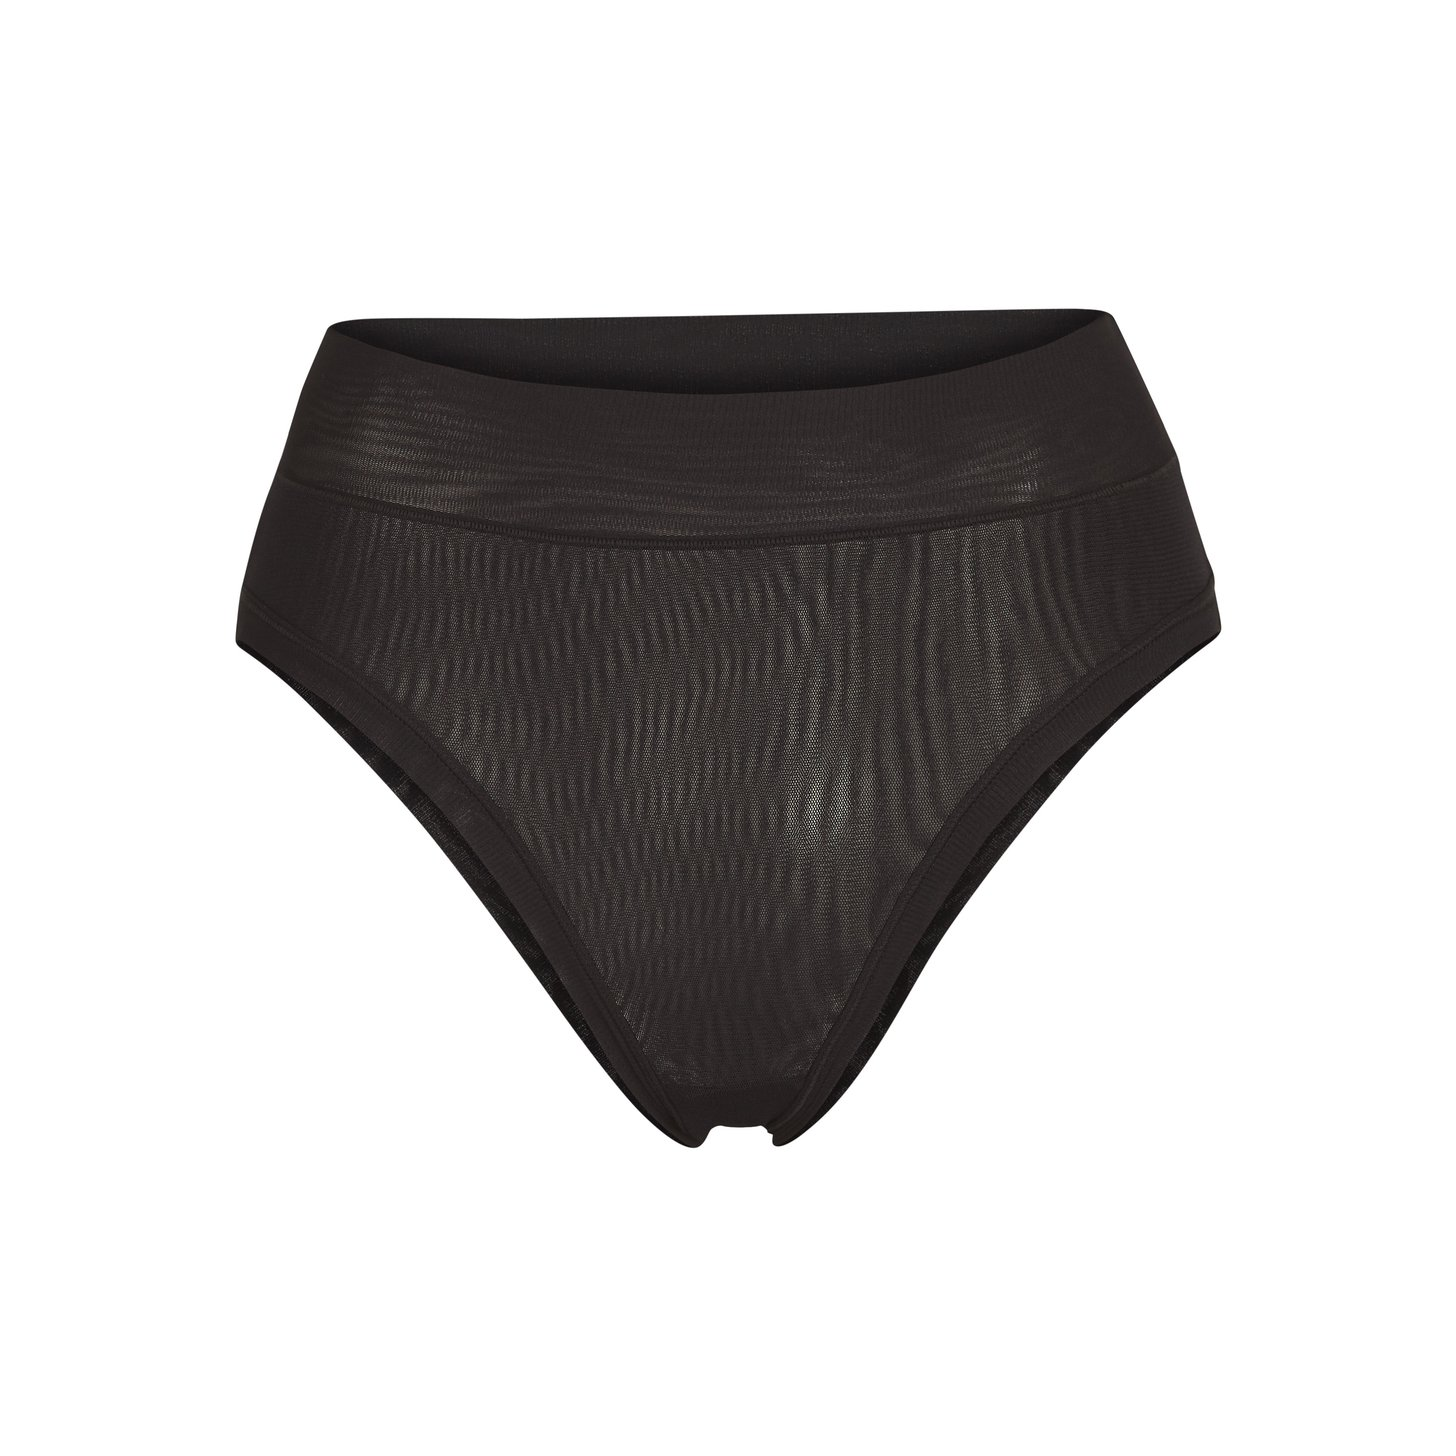 SUMMER MESH BRIEF by Skims, available on skims.com for $26 Kim Kardashian Shorts Exact Product